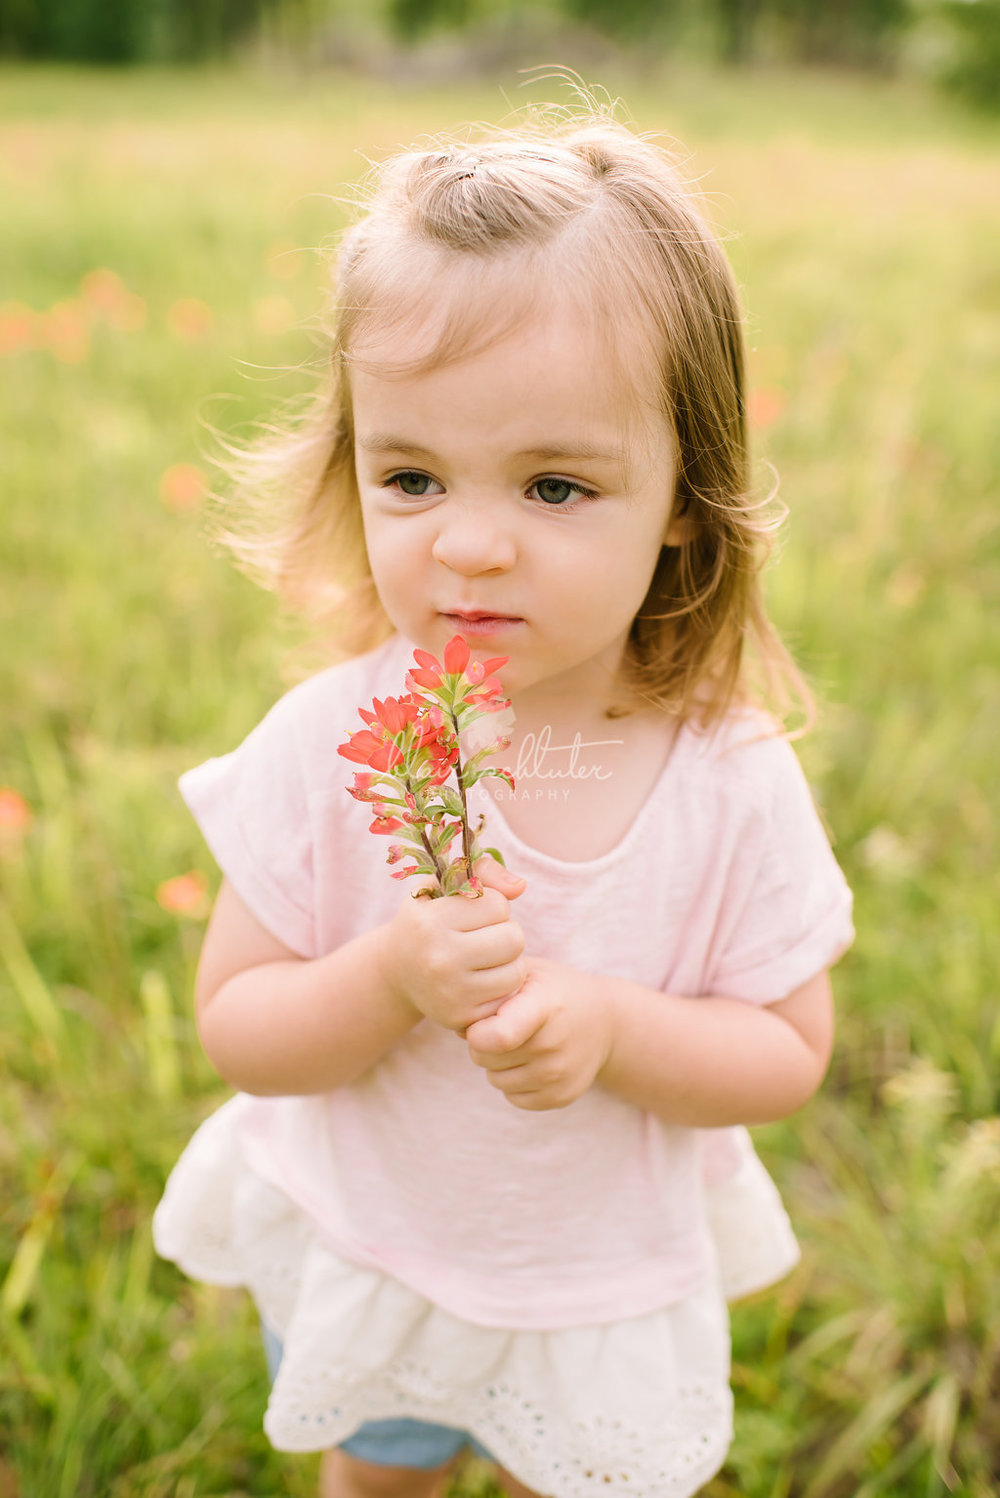 Dream Point Ranch Family Photography Location Tulsa Bixby 3.jpg